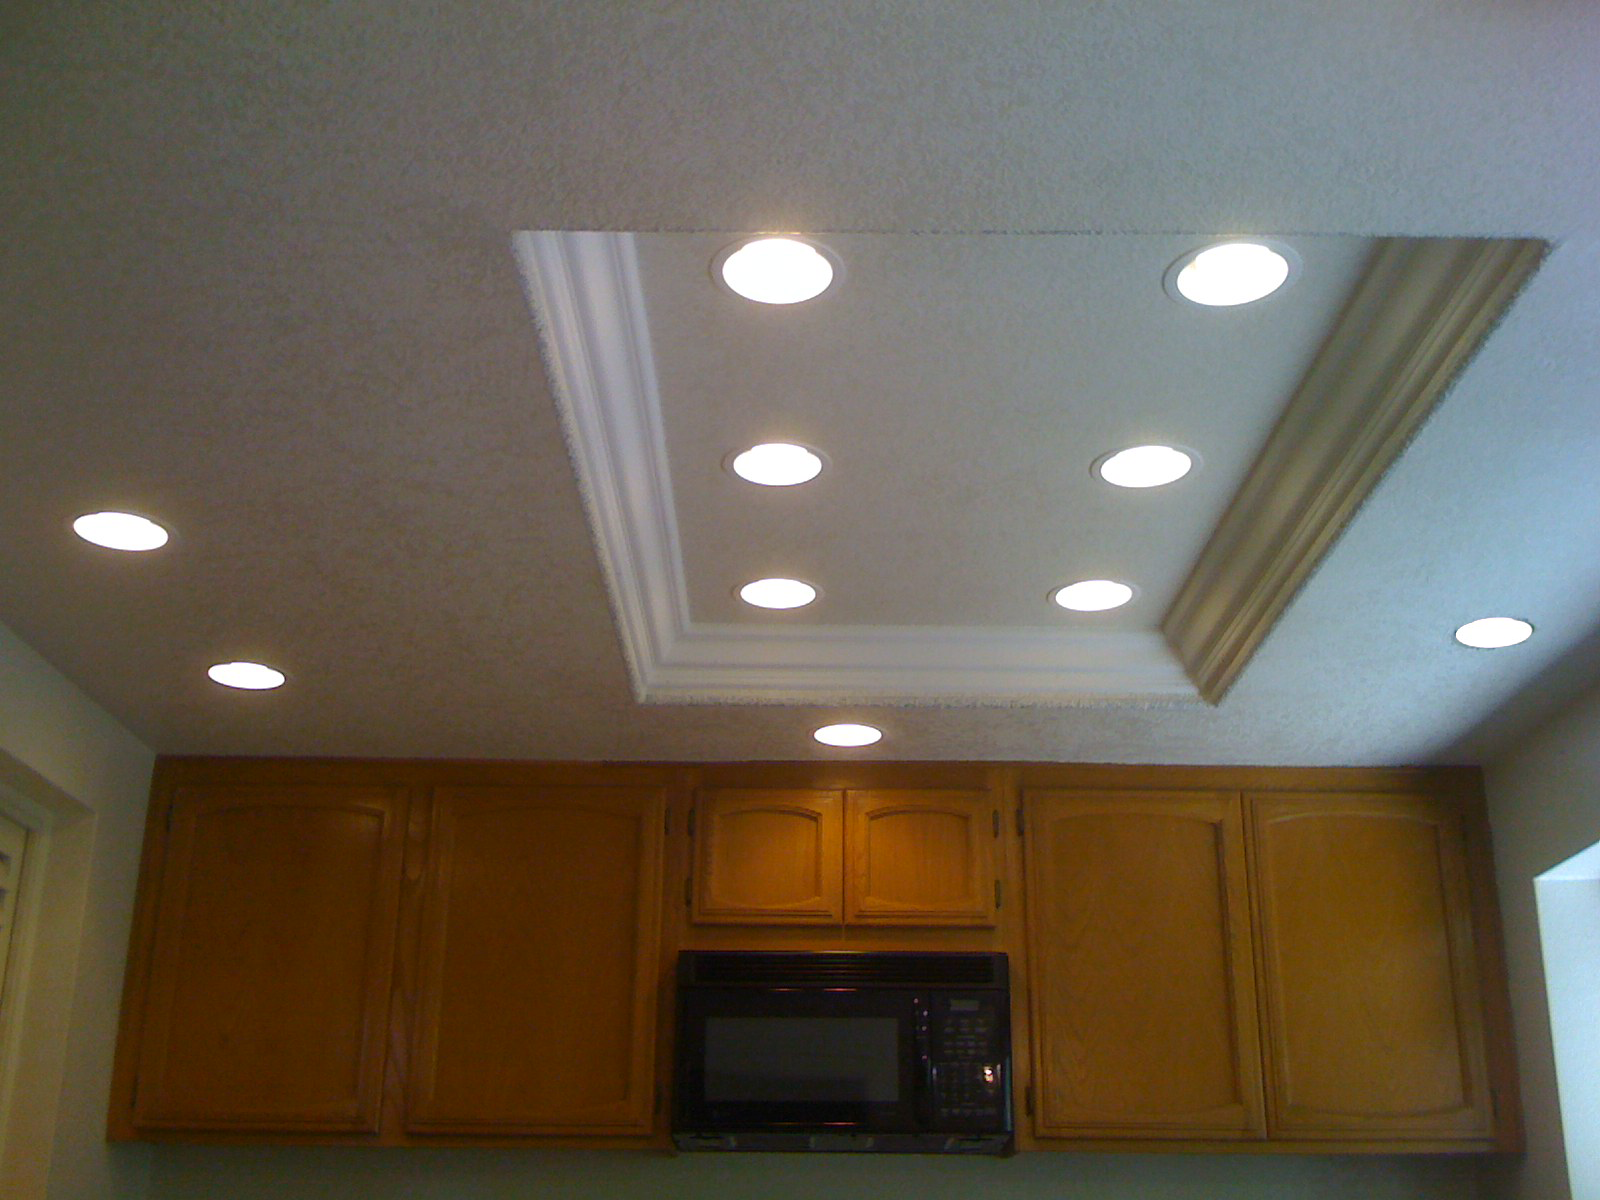 good idea for replacing fluorescent light with recessed lighting in